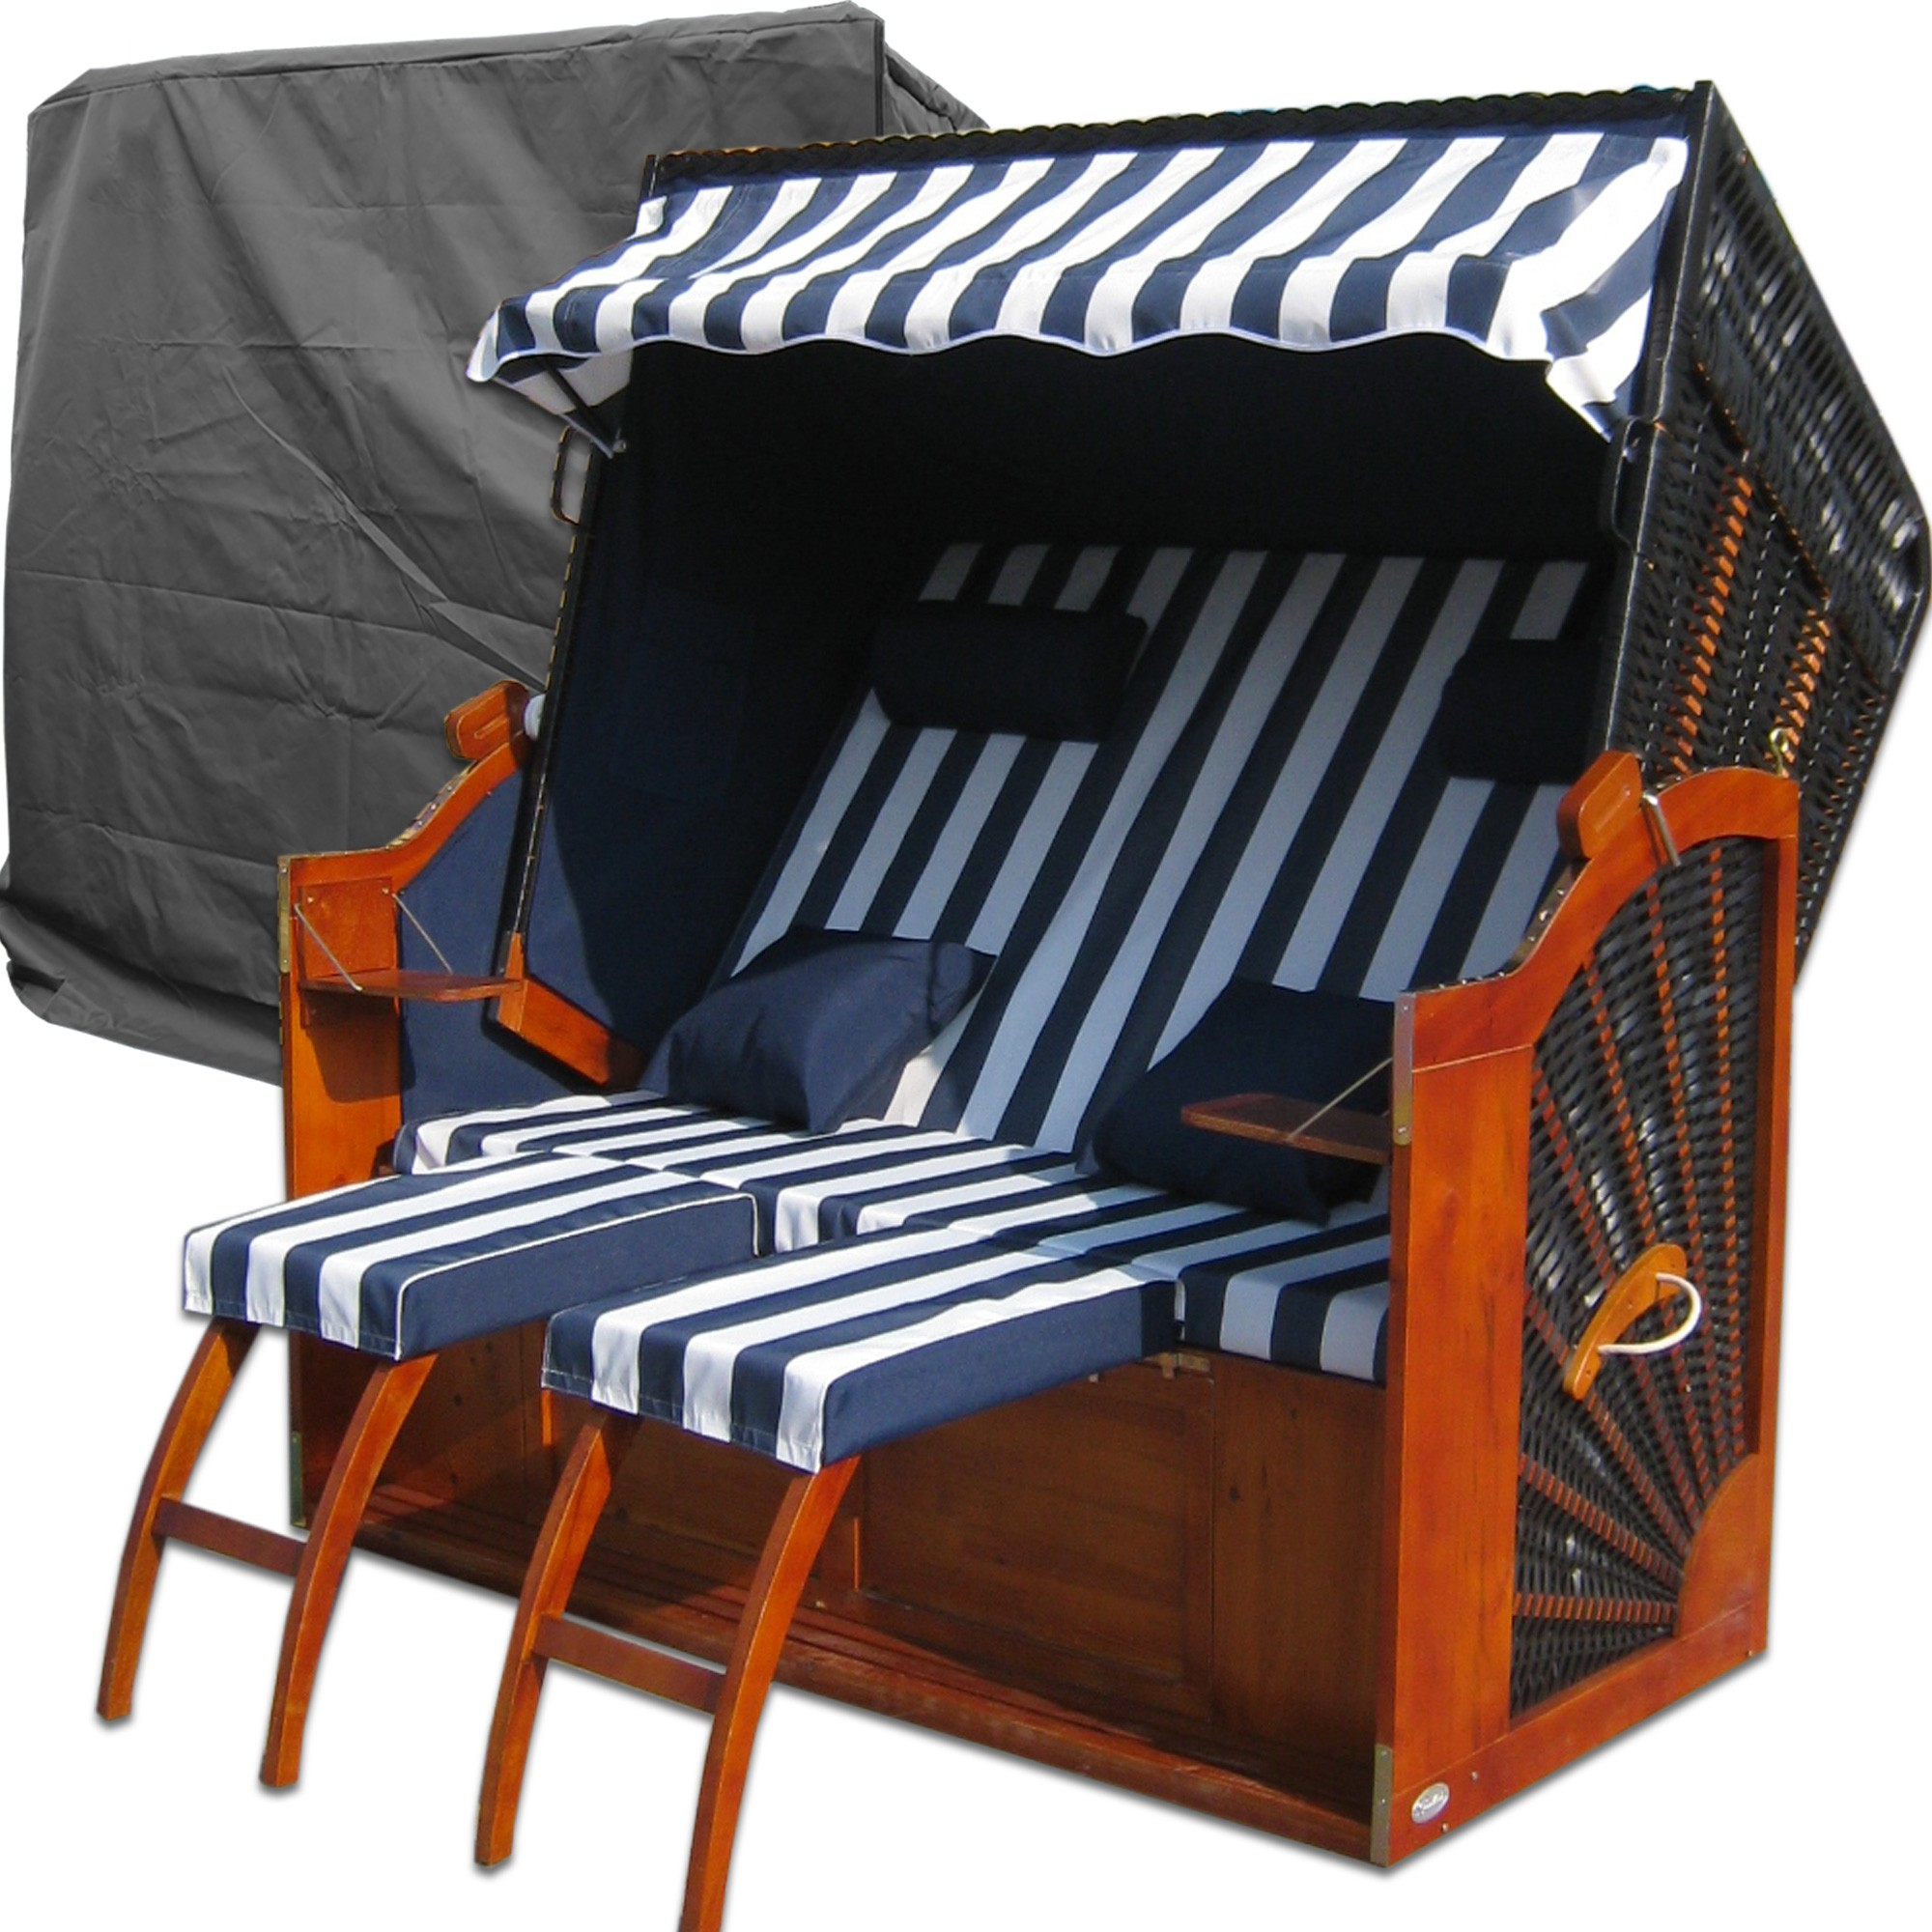 xxl strandkorb g nstig heringsdorfer strandkorb kaufen. Black Bedroom Furniture Sets. Home Design Ideas